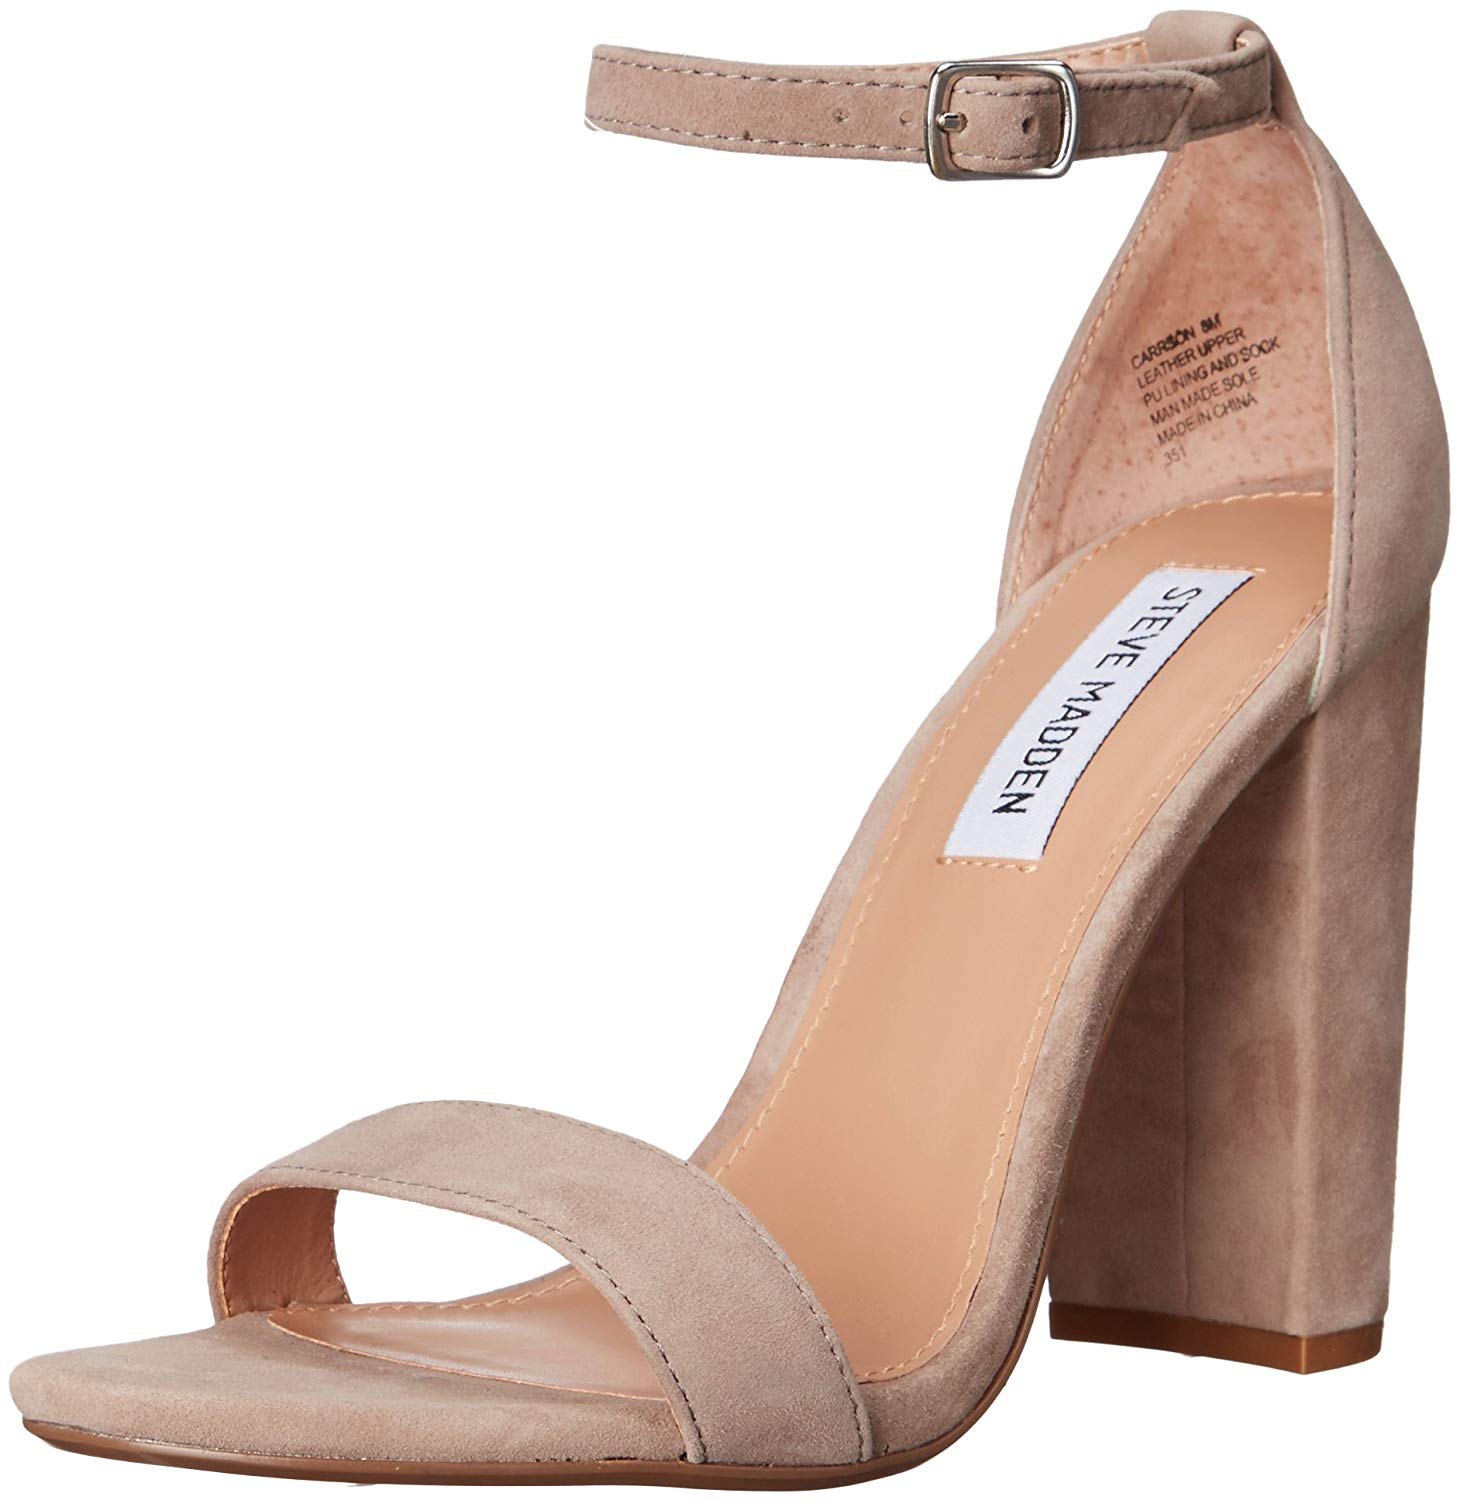 c9e3145310a0 Steve Madden Womens Carrson Leather Open Toe Special